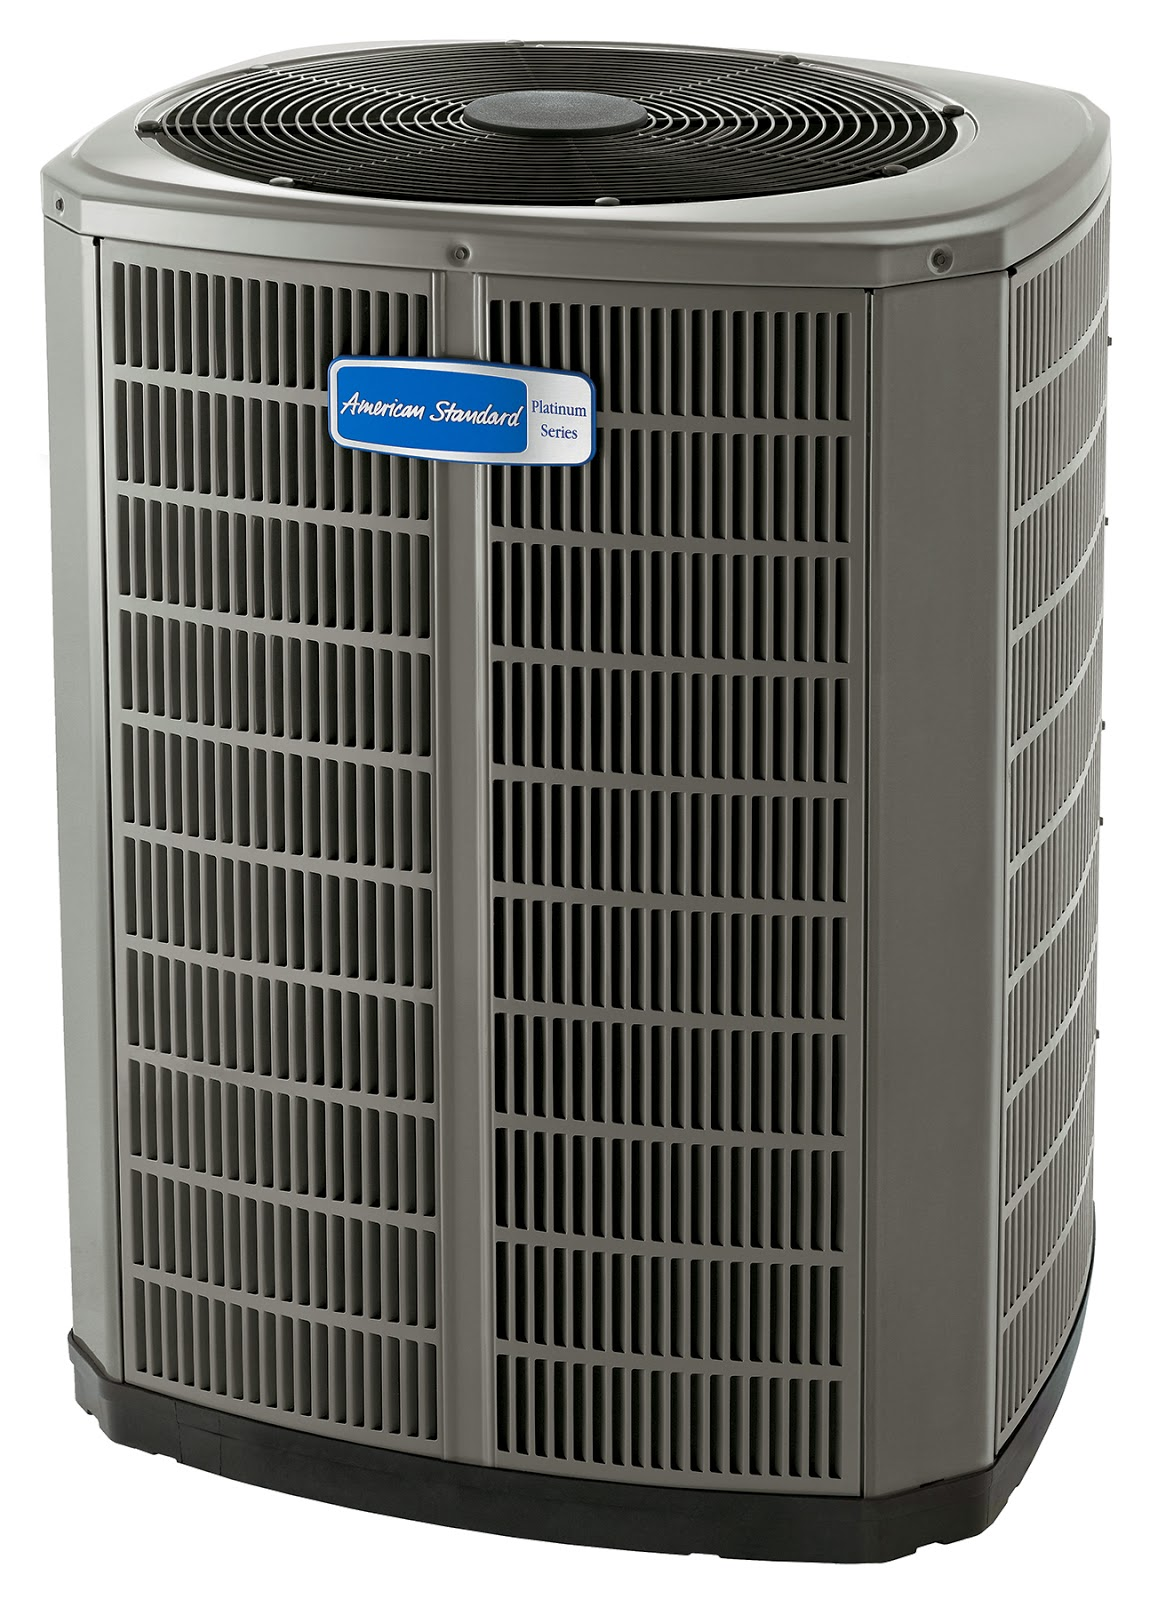 A-Platinum-ZM-Air-Conditioners-Beauty-Color.jpg